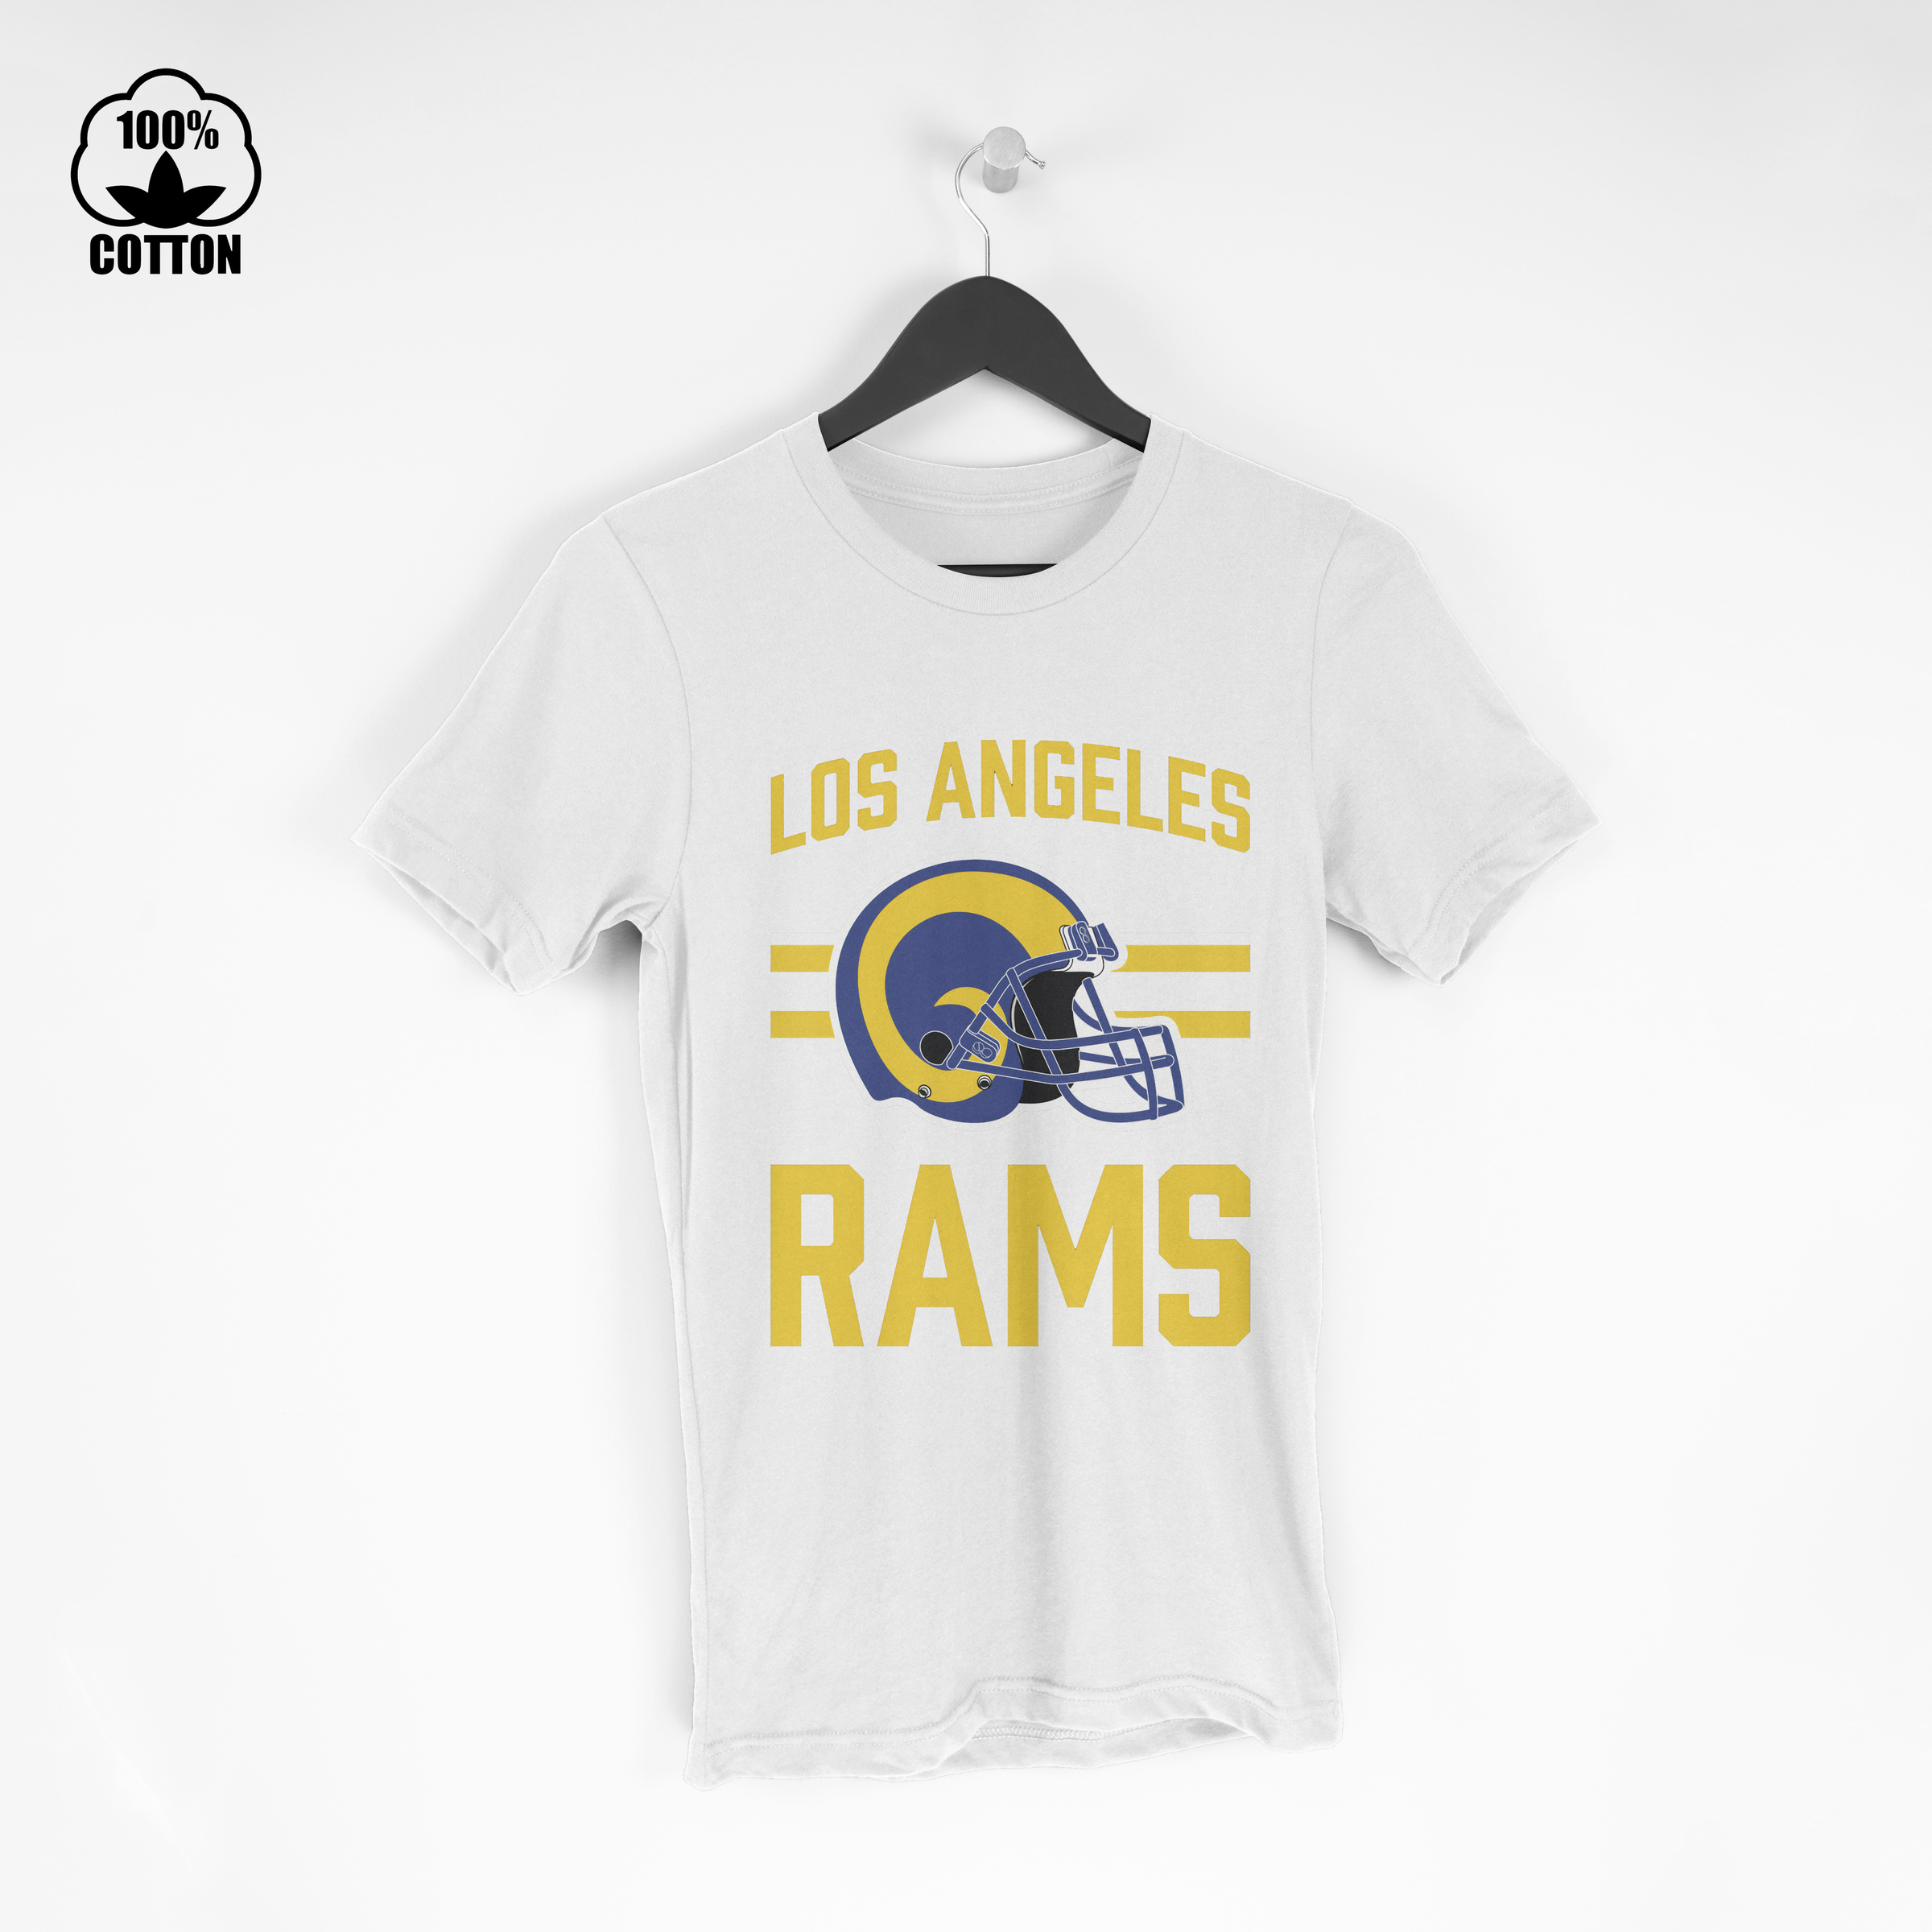 LIMITED EDITION!! Los Angeles Rams OD4 T Shirt Tee White.jpg